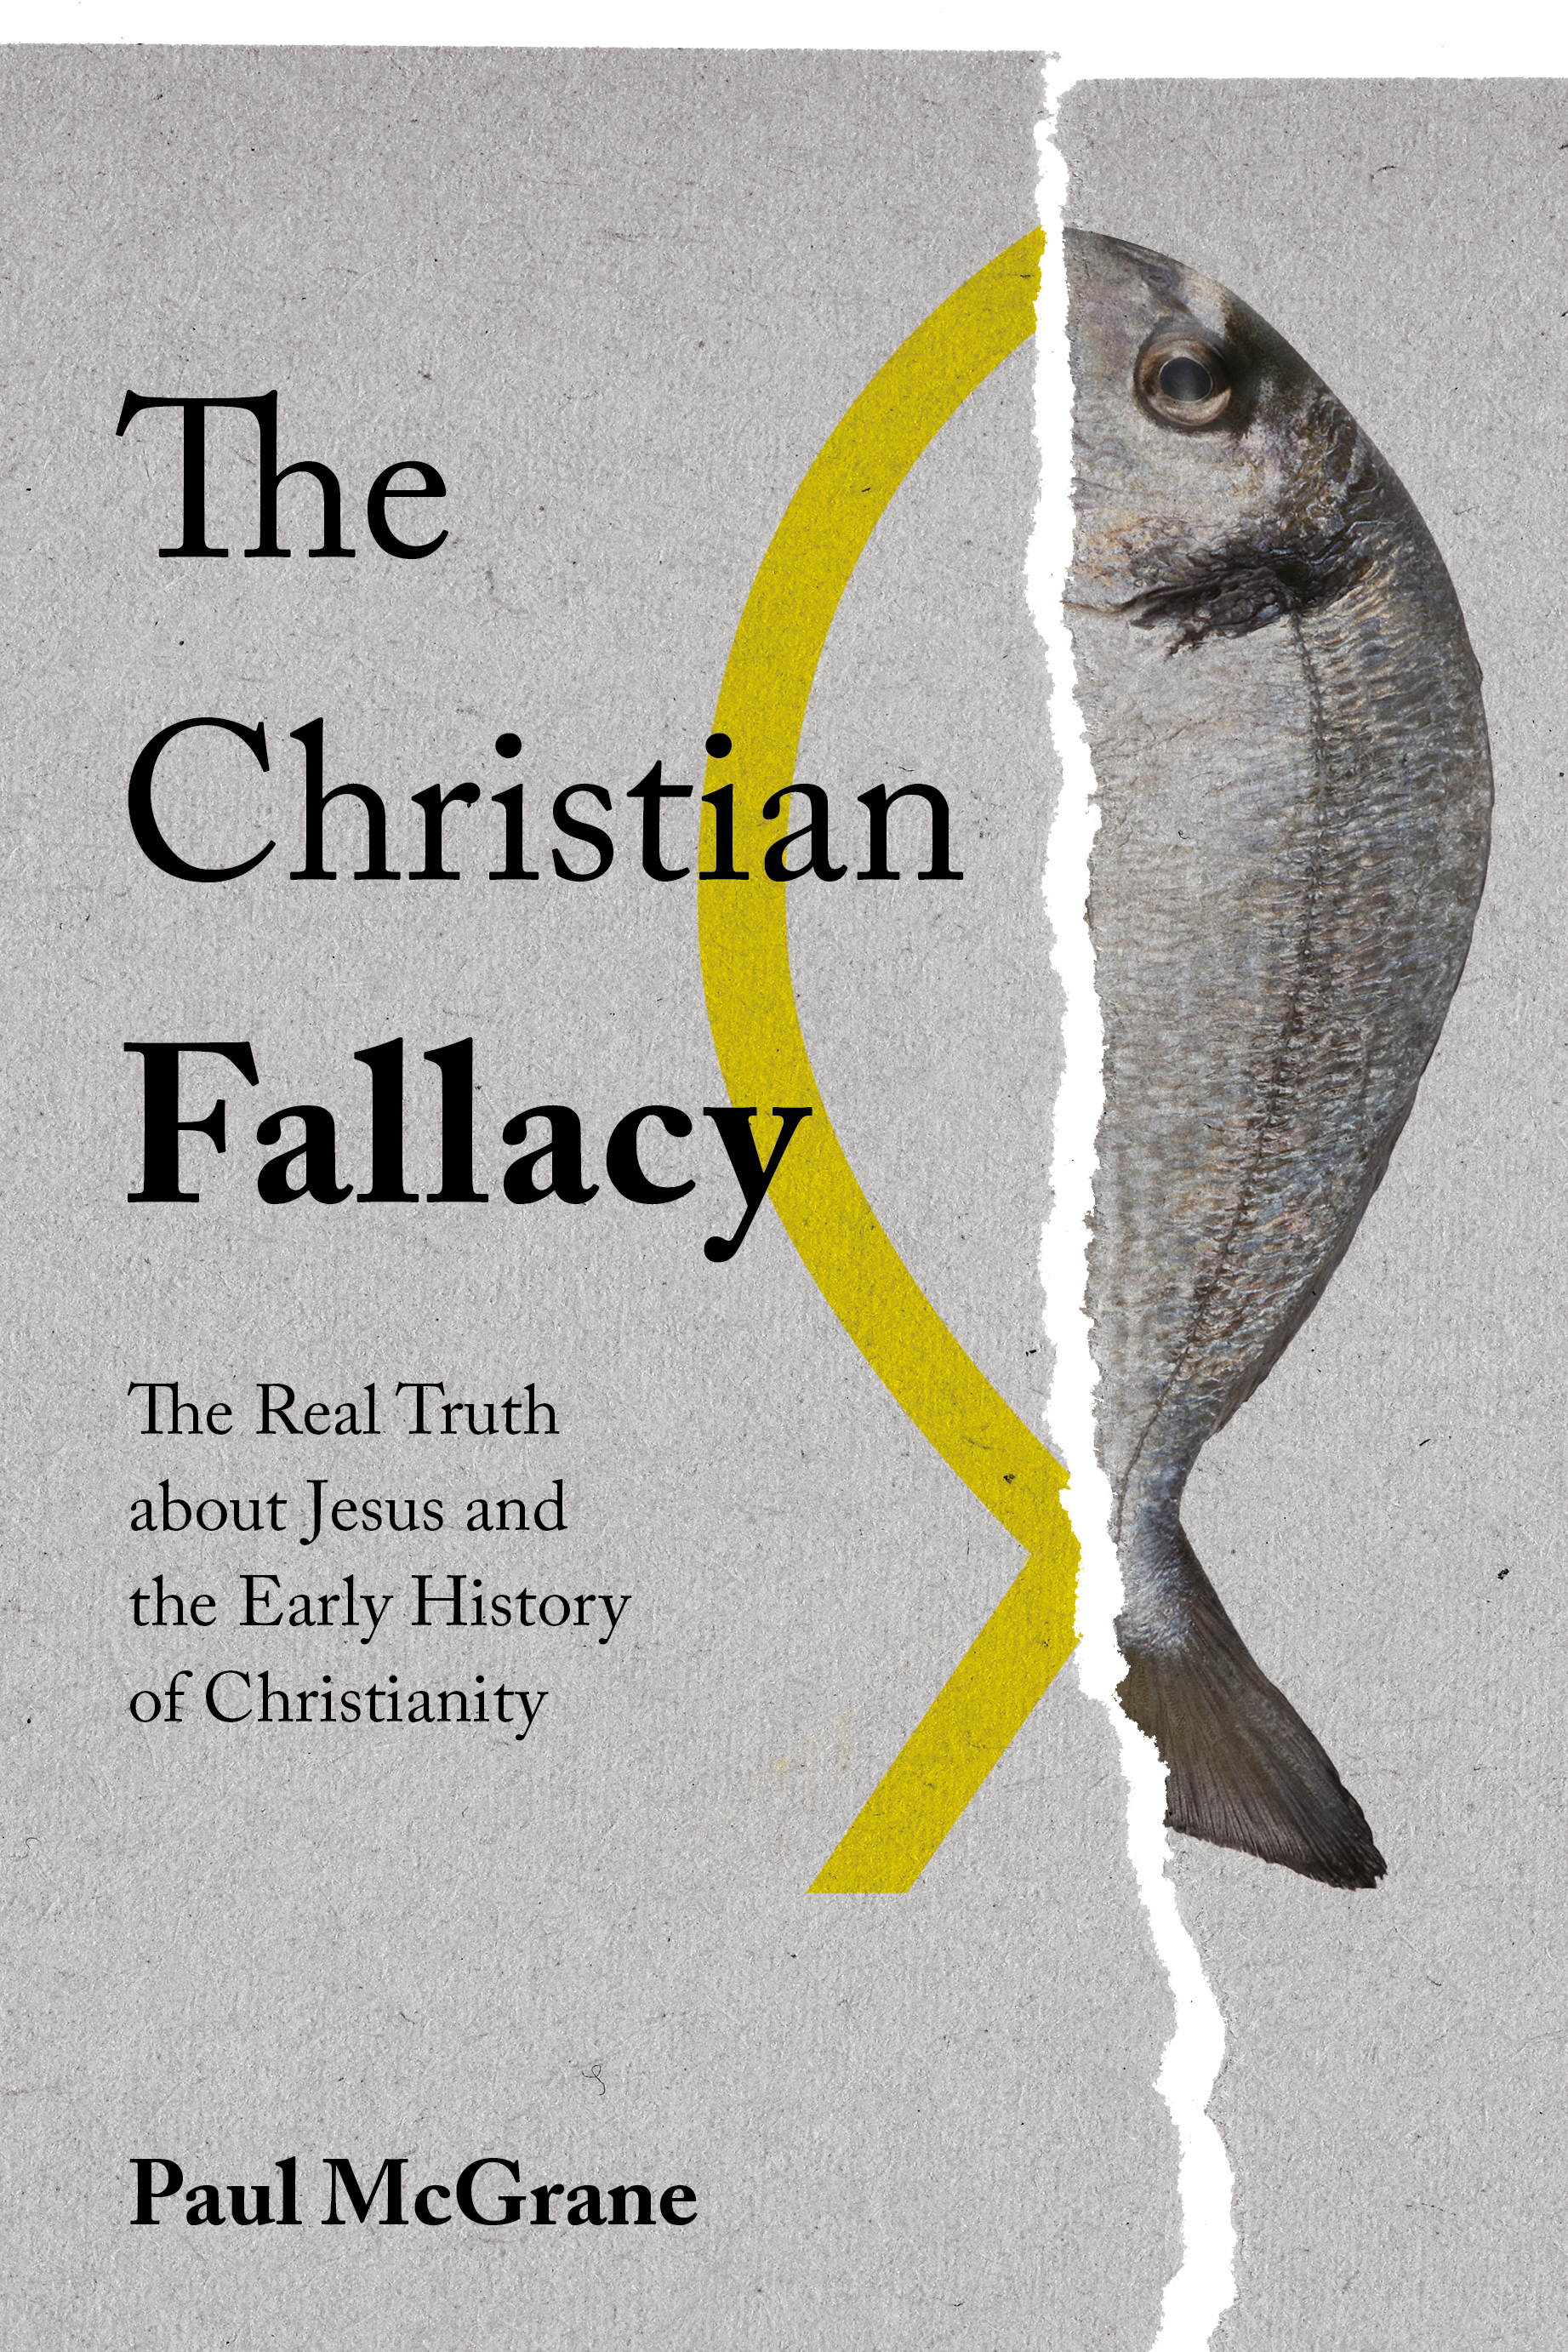 The Christian Fallacy - Does for Christianity what The God Delusion did for general religionReligious belief in the West is atrophying – except in the USA where it has retreated into Christian fundamentalism.This iconoclastic book provides historical reinforcement to the former and a clear challenge to the latter. It offers a completely new and comprehensive answer to the question 'Who exactly was Jesus and how does that relate to what Christians came to believe after his death?'Read More